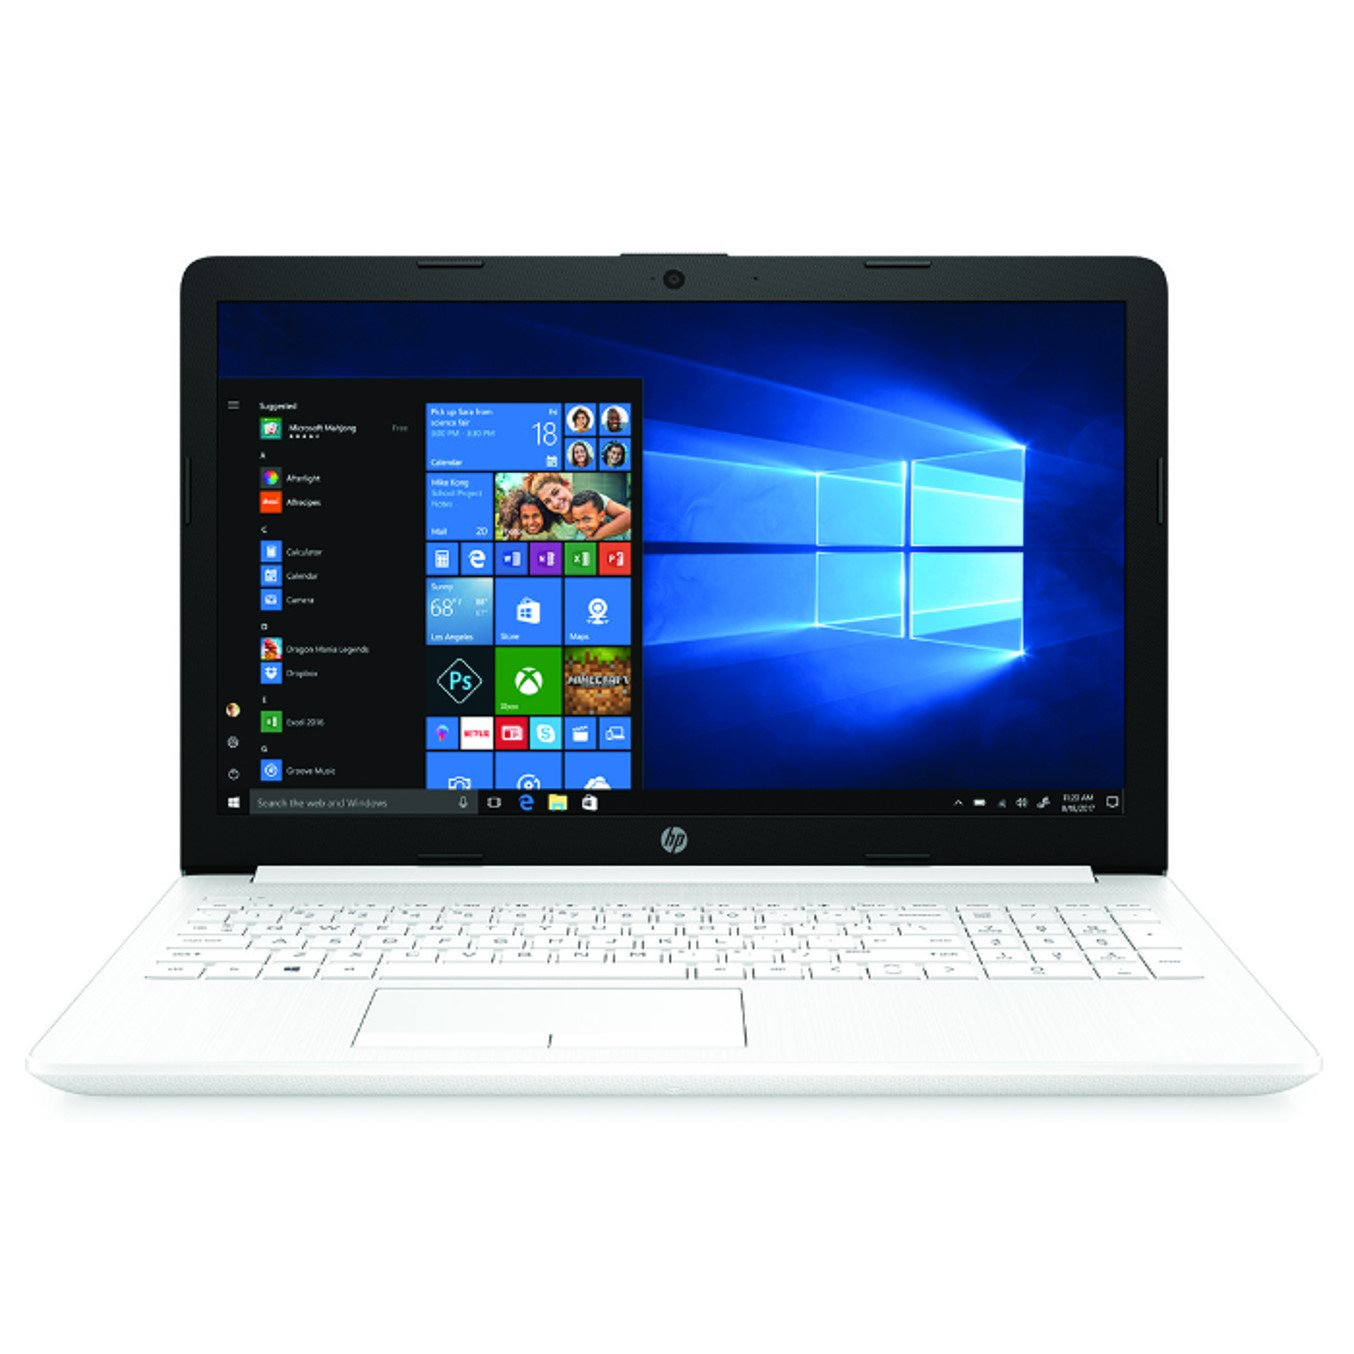 "PORTATIL HP NOTEBOOK 15-DA0234NS CELERON N4000 15.6"" 8GB / 1TB / INTEL UHD 600 / WIFI / BT / W10"